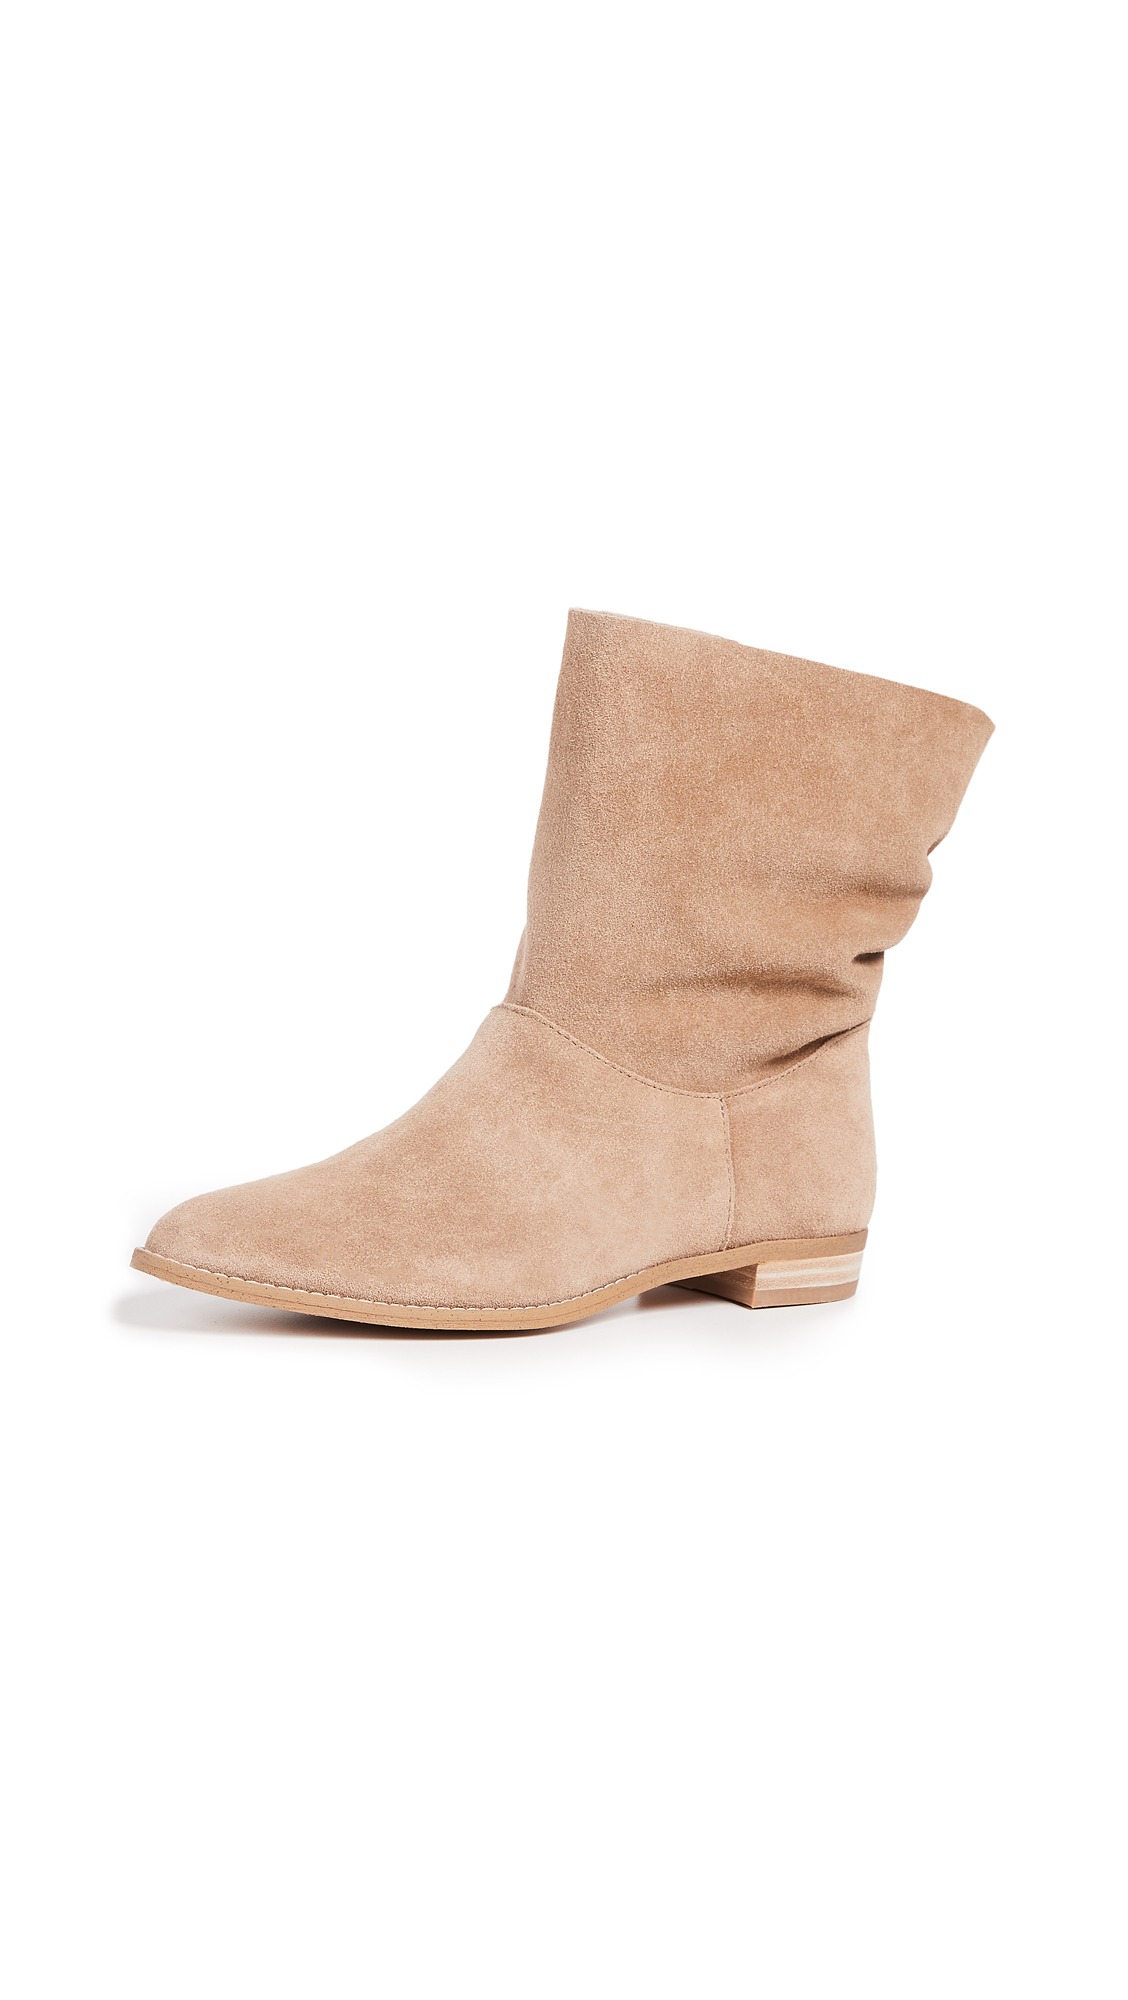 Splendid Claudia Booties - Oat